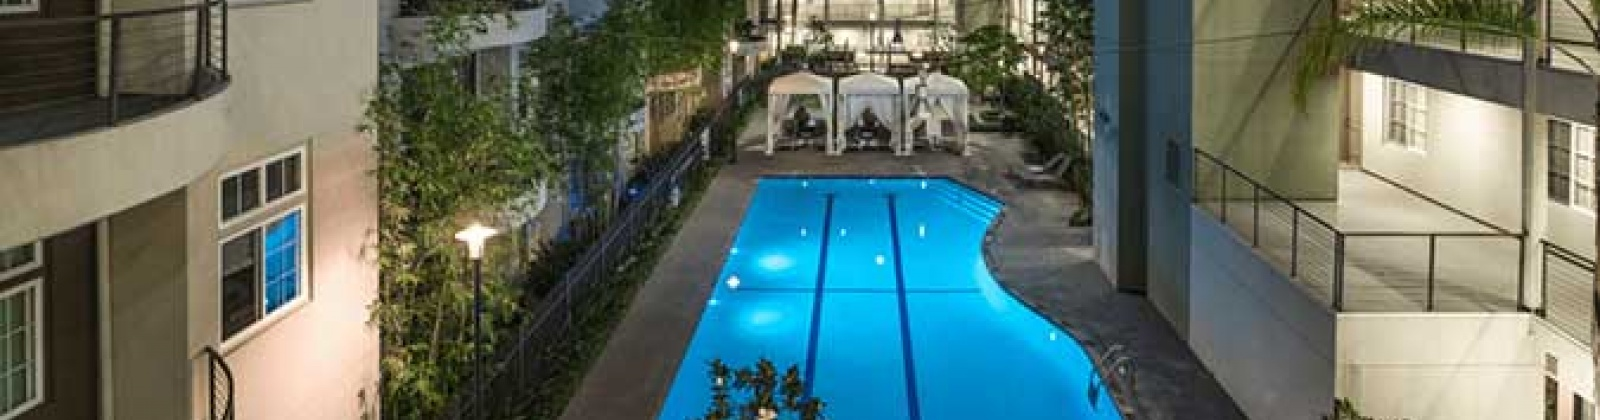 Axis 2300 Apartment Poolside Amenities